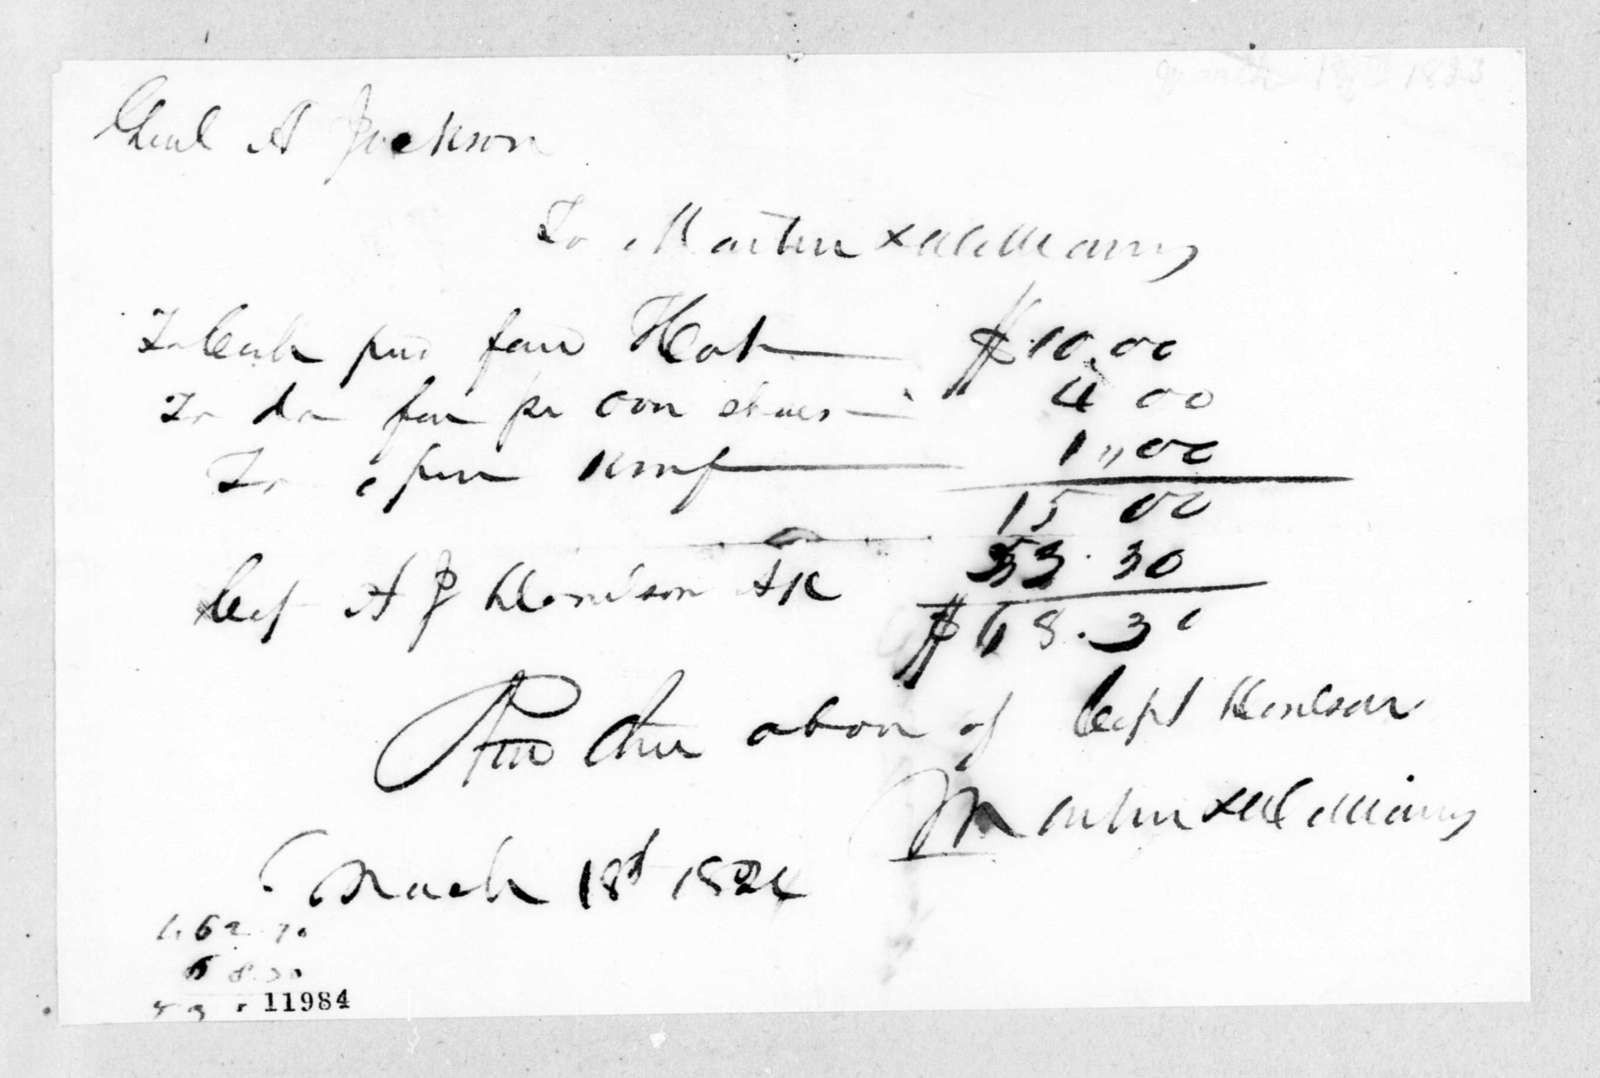 Martin & Williams to Andrew Jackson, March 18, 1824